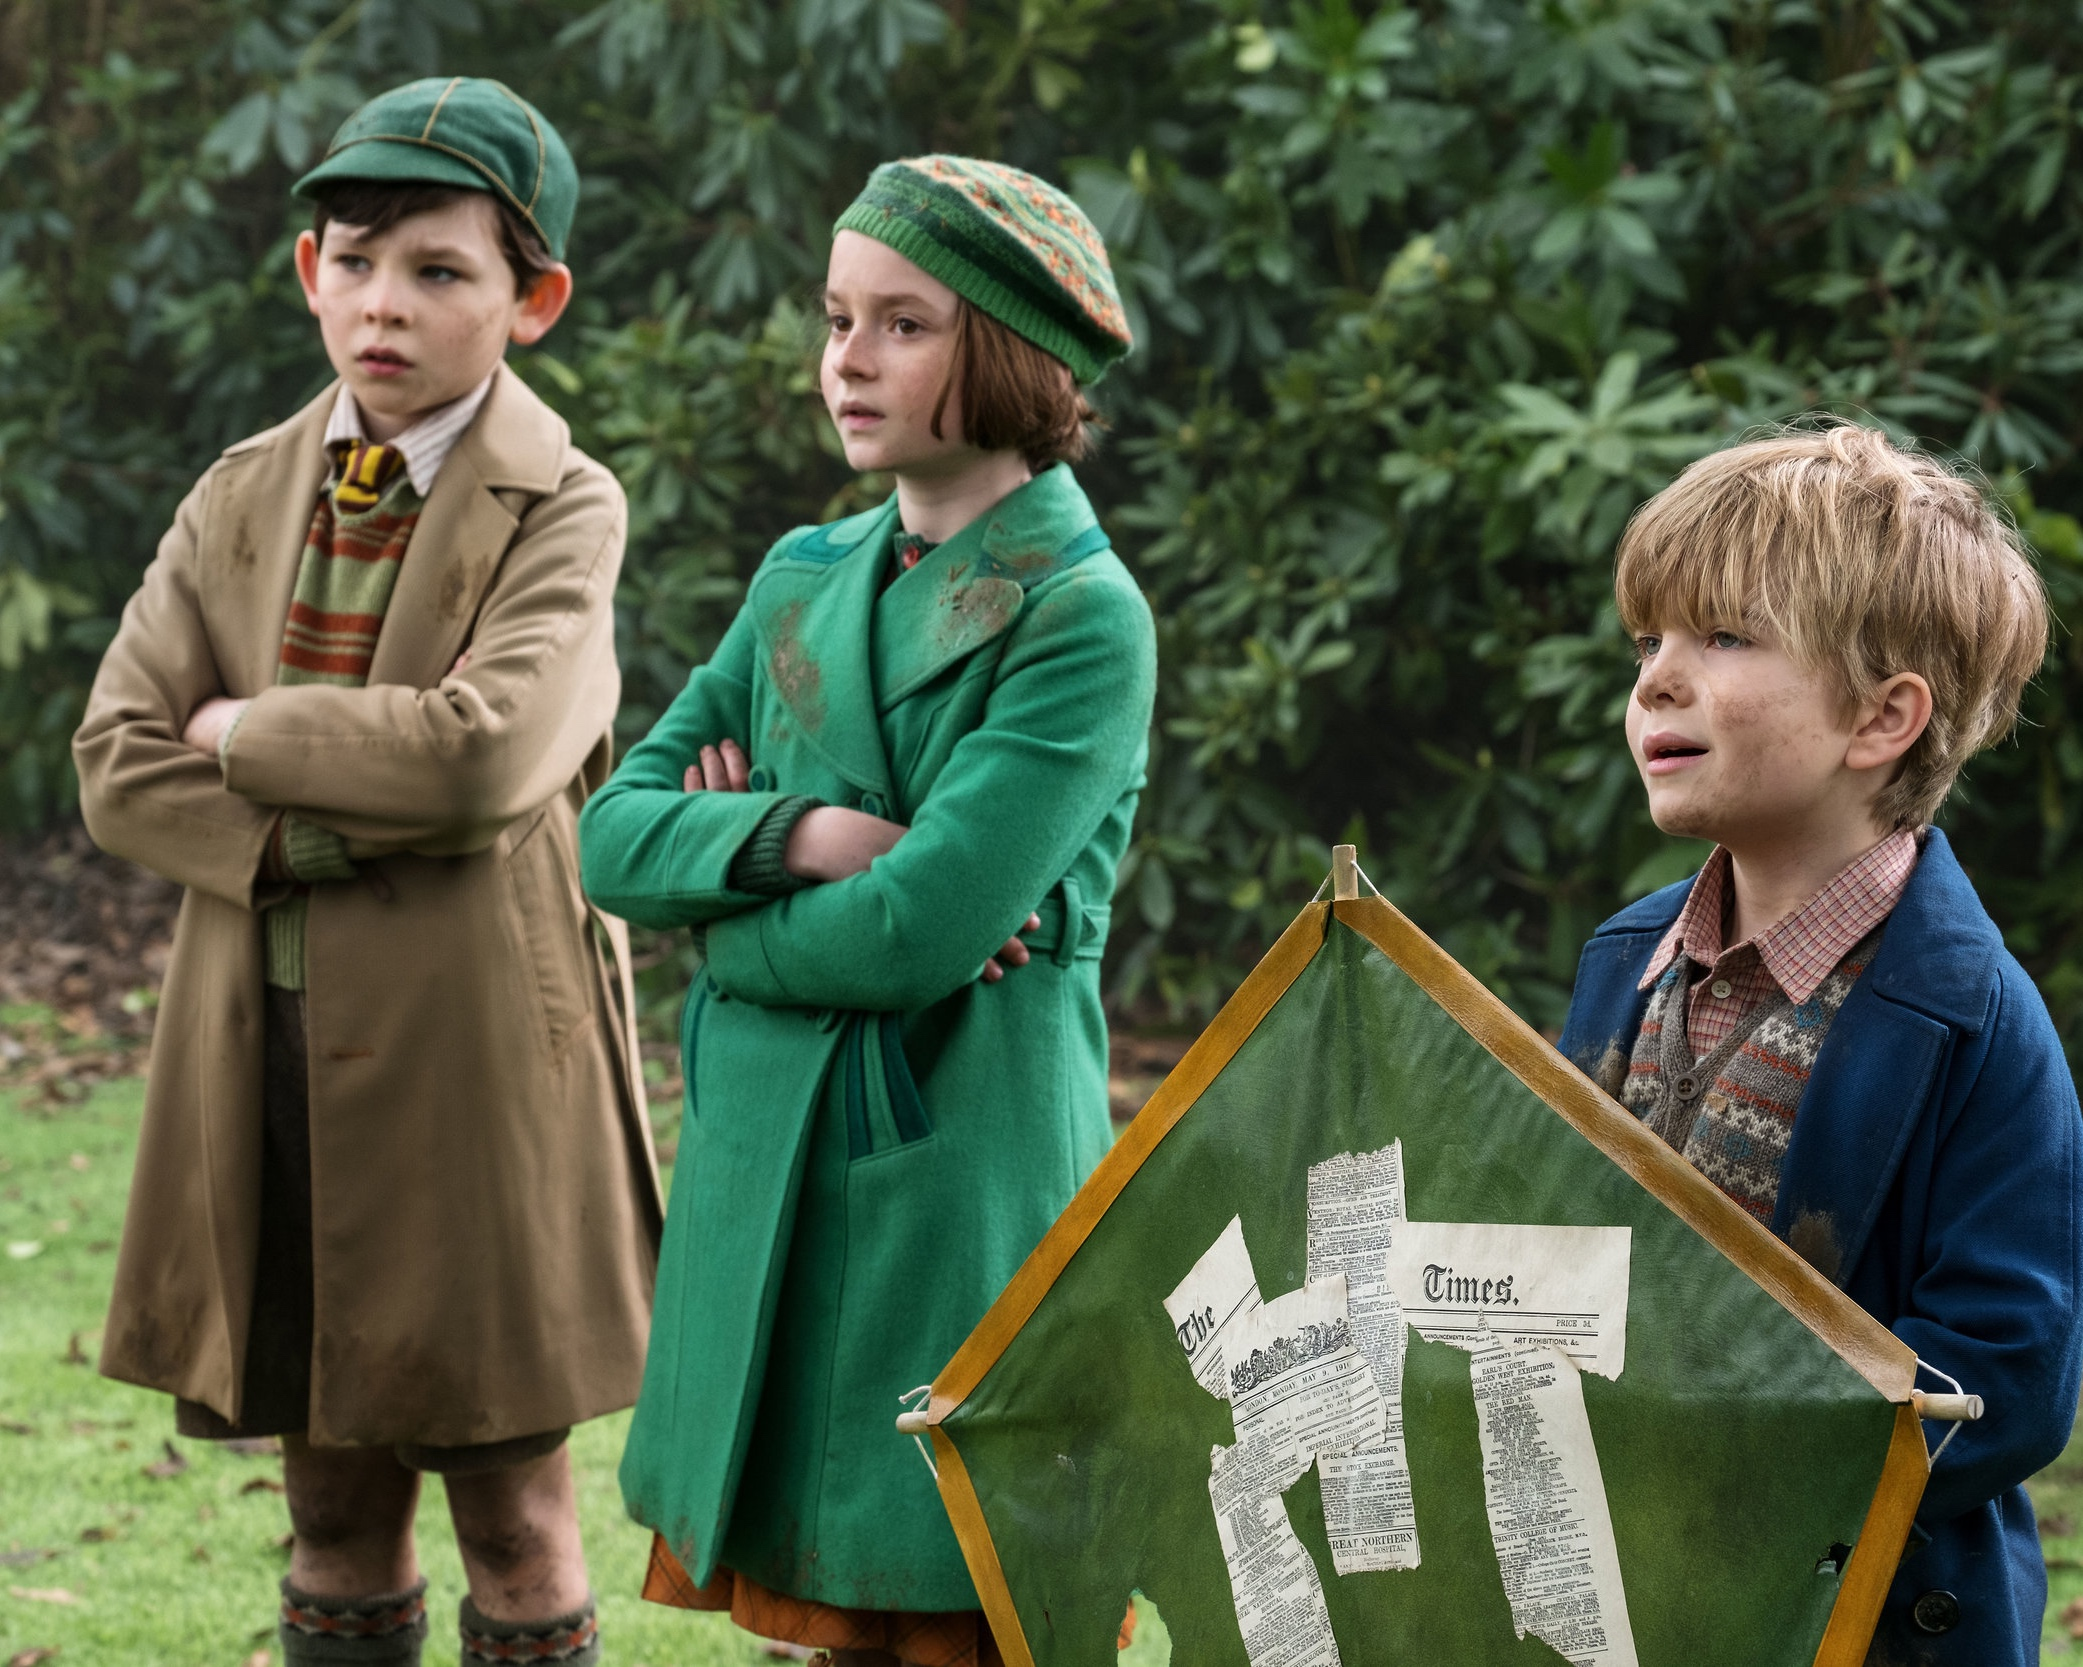 The next generation of Banks children: John (Saleh), Annabelle (Davies), and Georgie (Dawson).